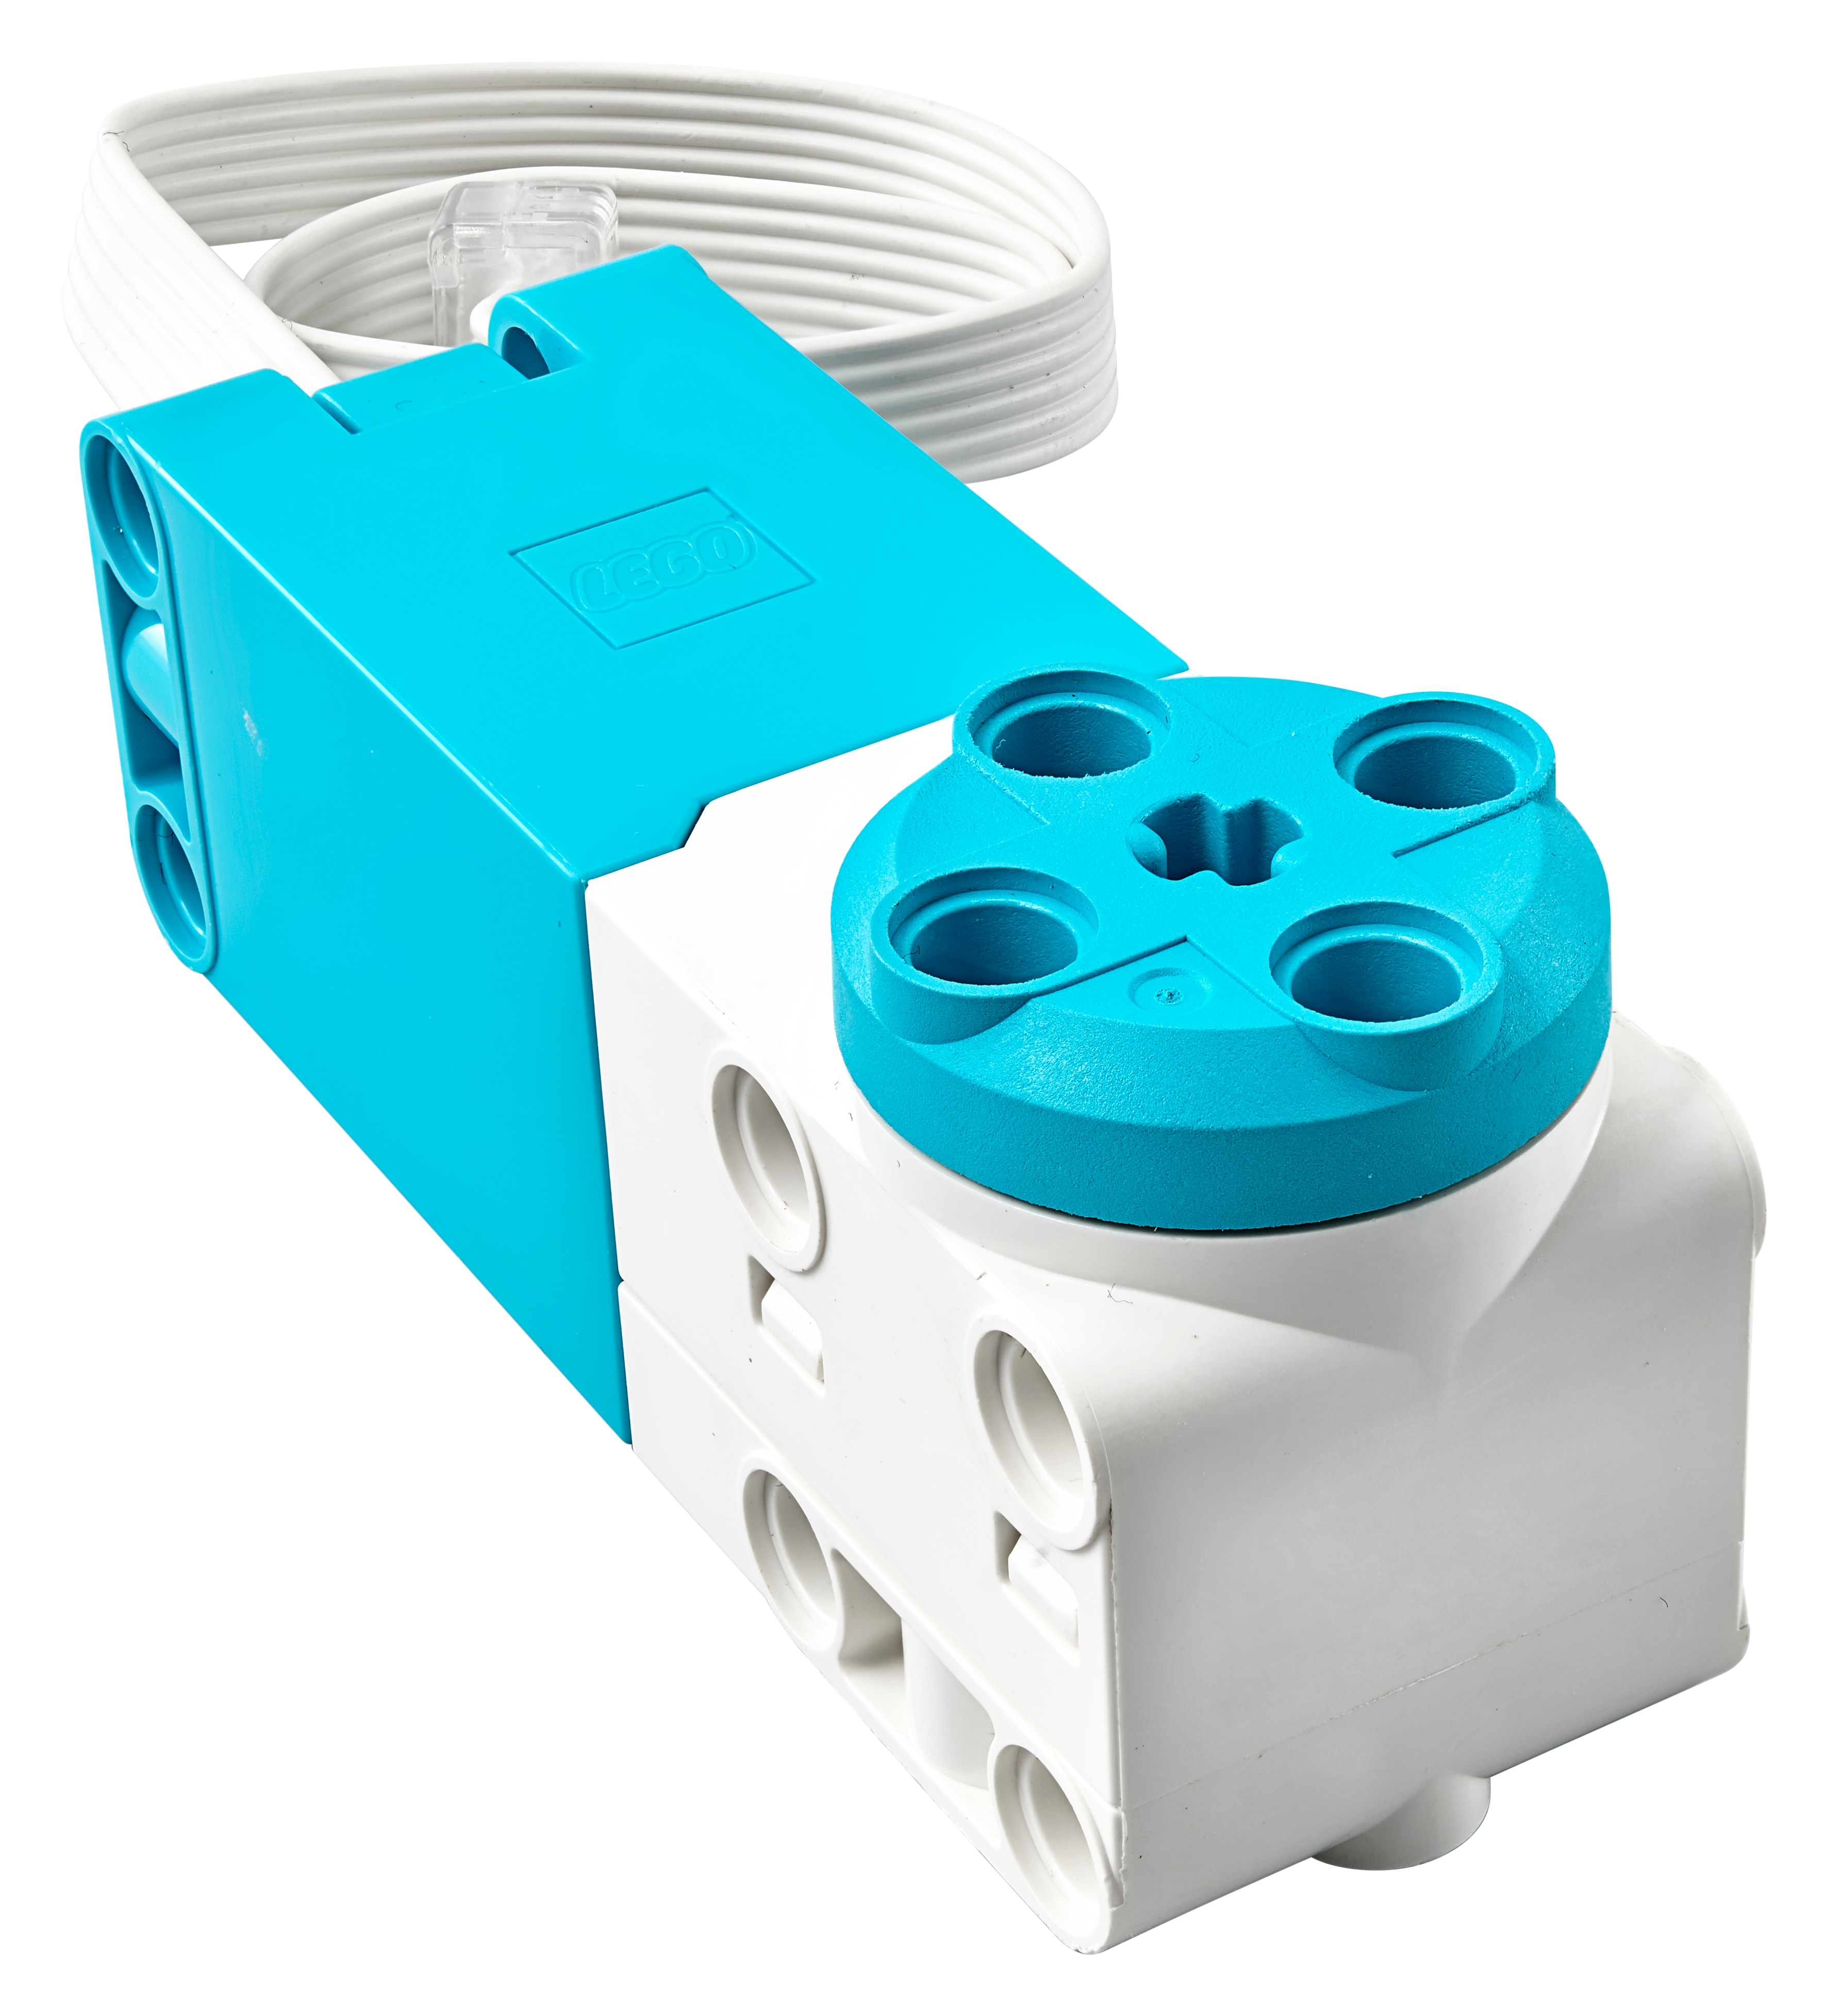 Technic Distance Sensor by LEGO Education, product 45603